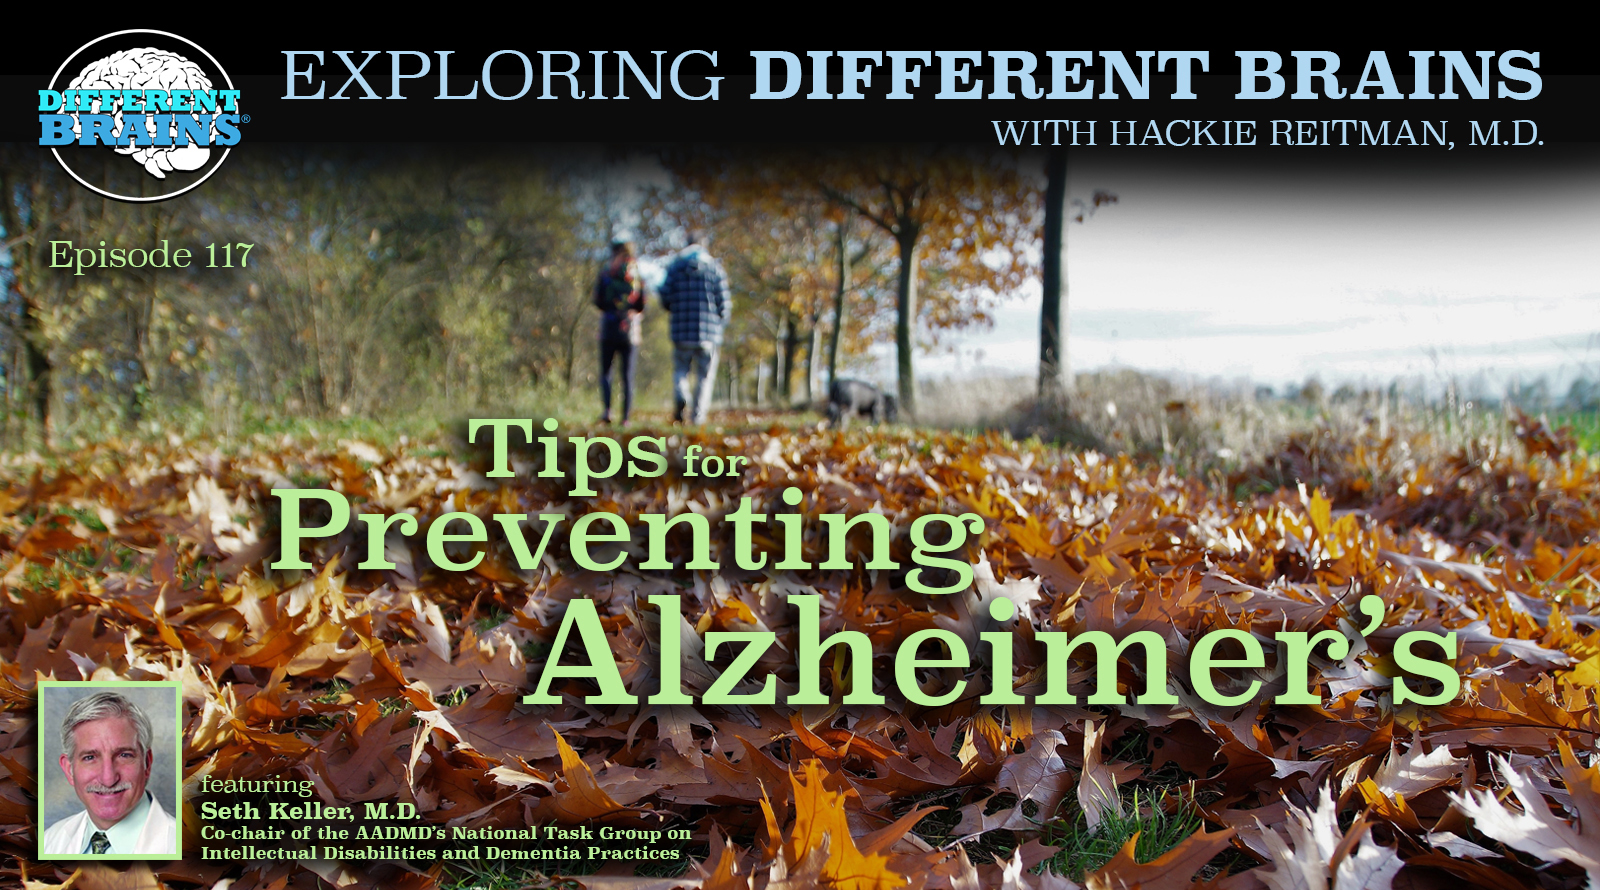 Tips For Preventing Alzheimer's, With Seth Keller, M.D. Of The AADMD | EDB 117